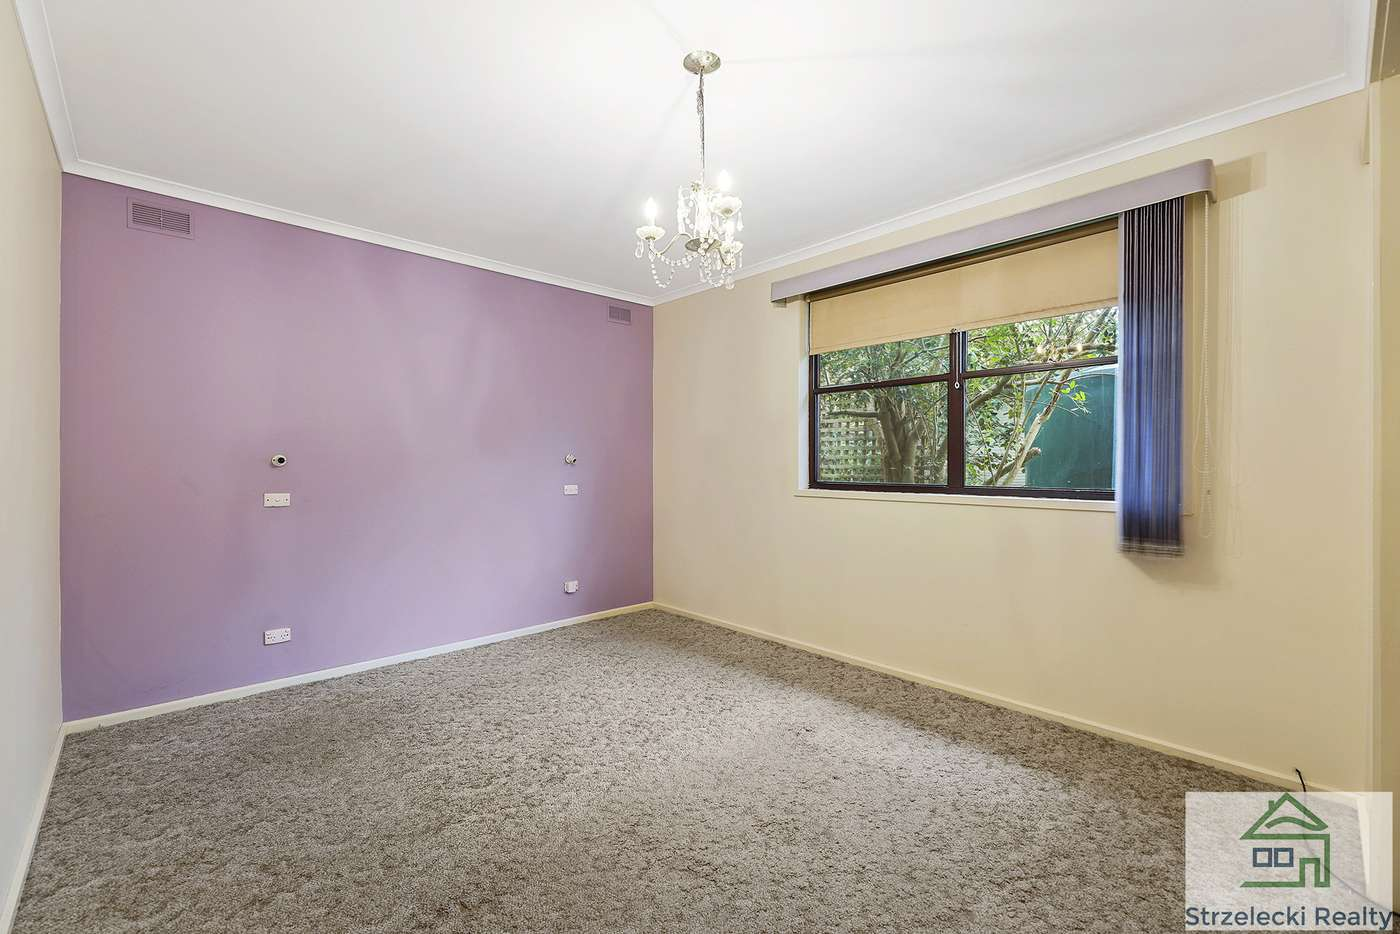 Sixth view of Homely house listing, 97-99 Thorpdale Rd, Trafalgar VIC 3824